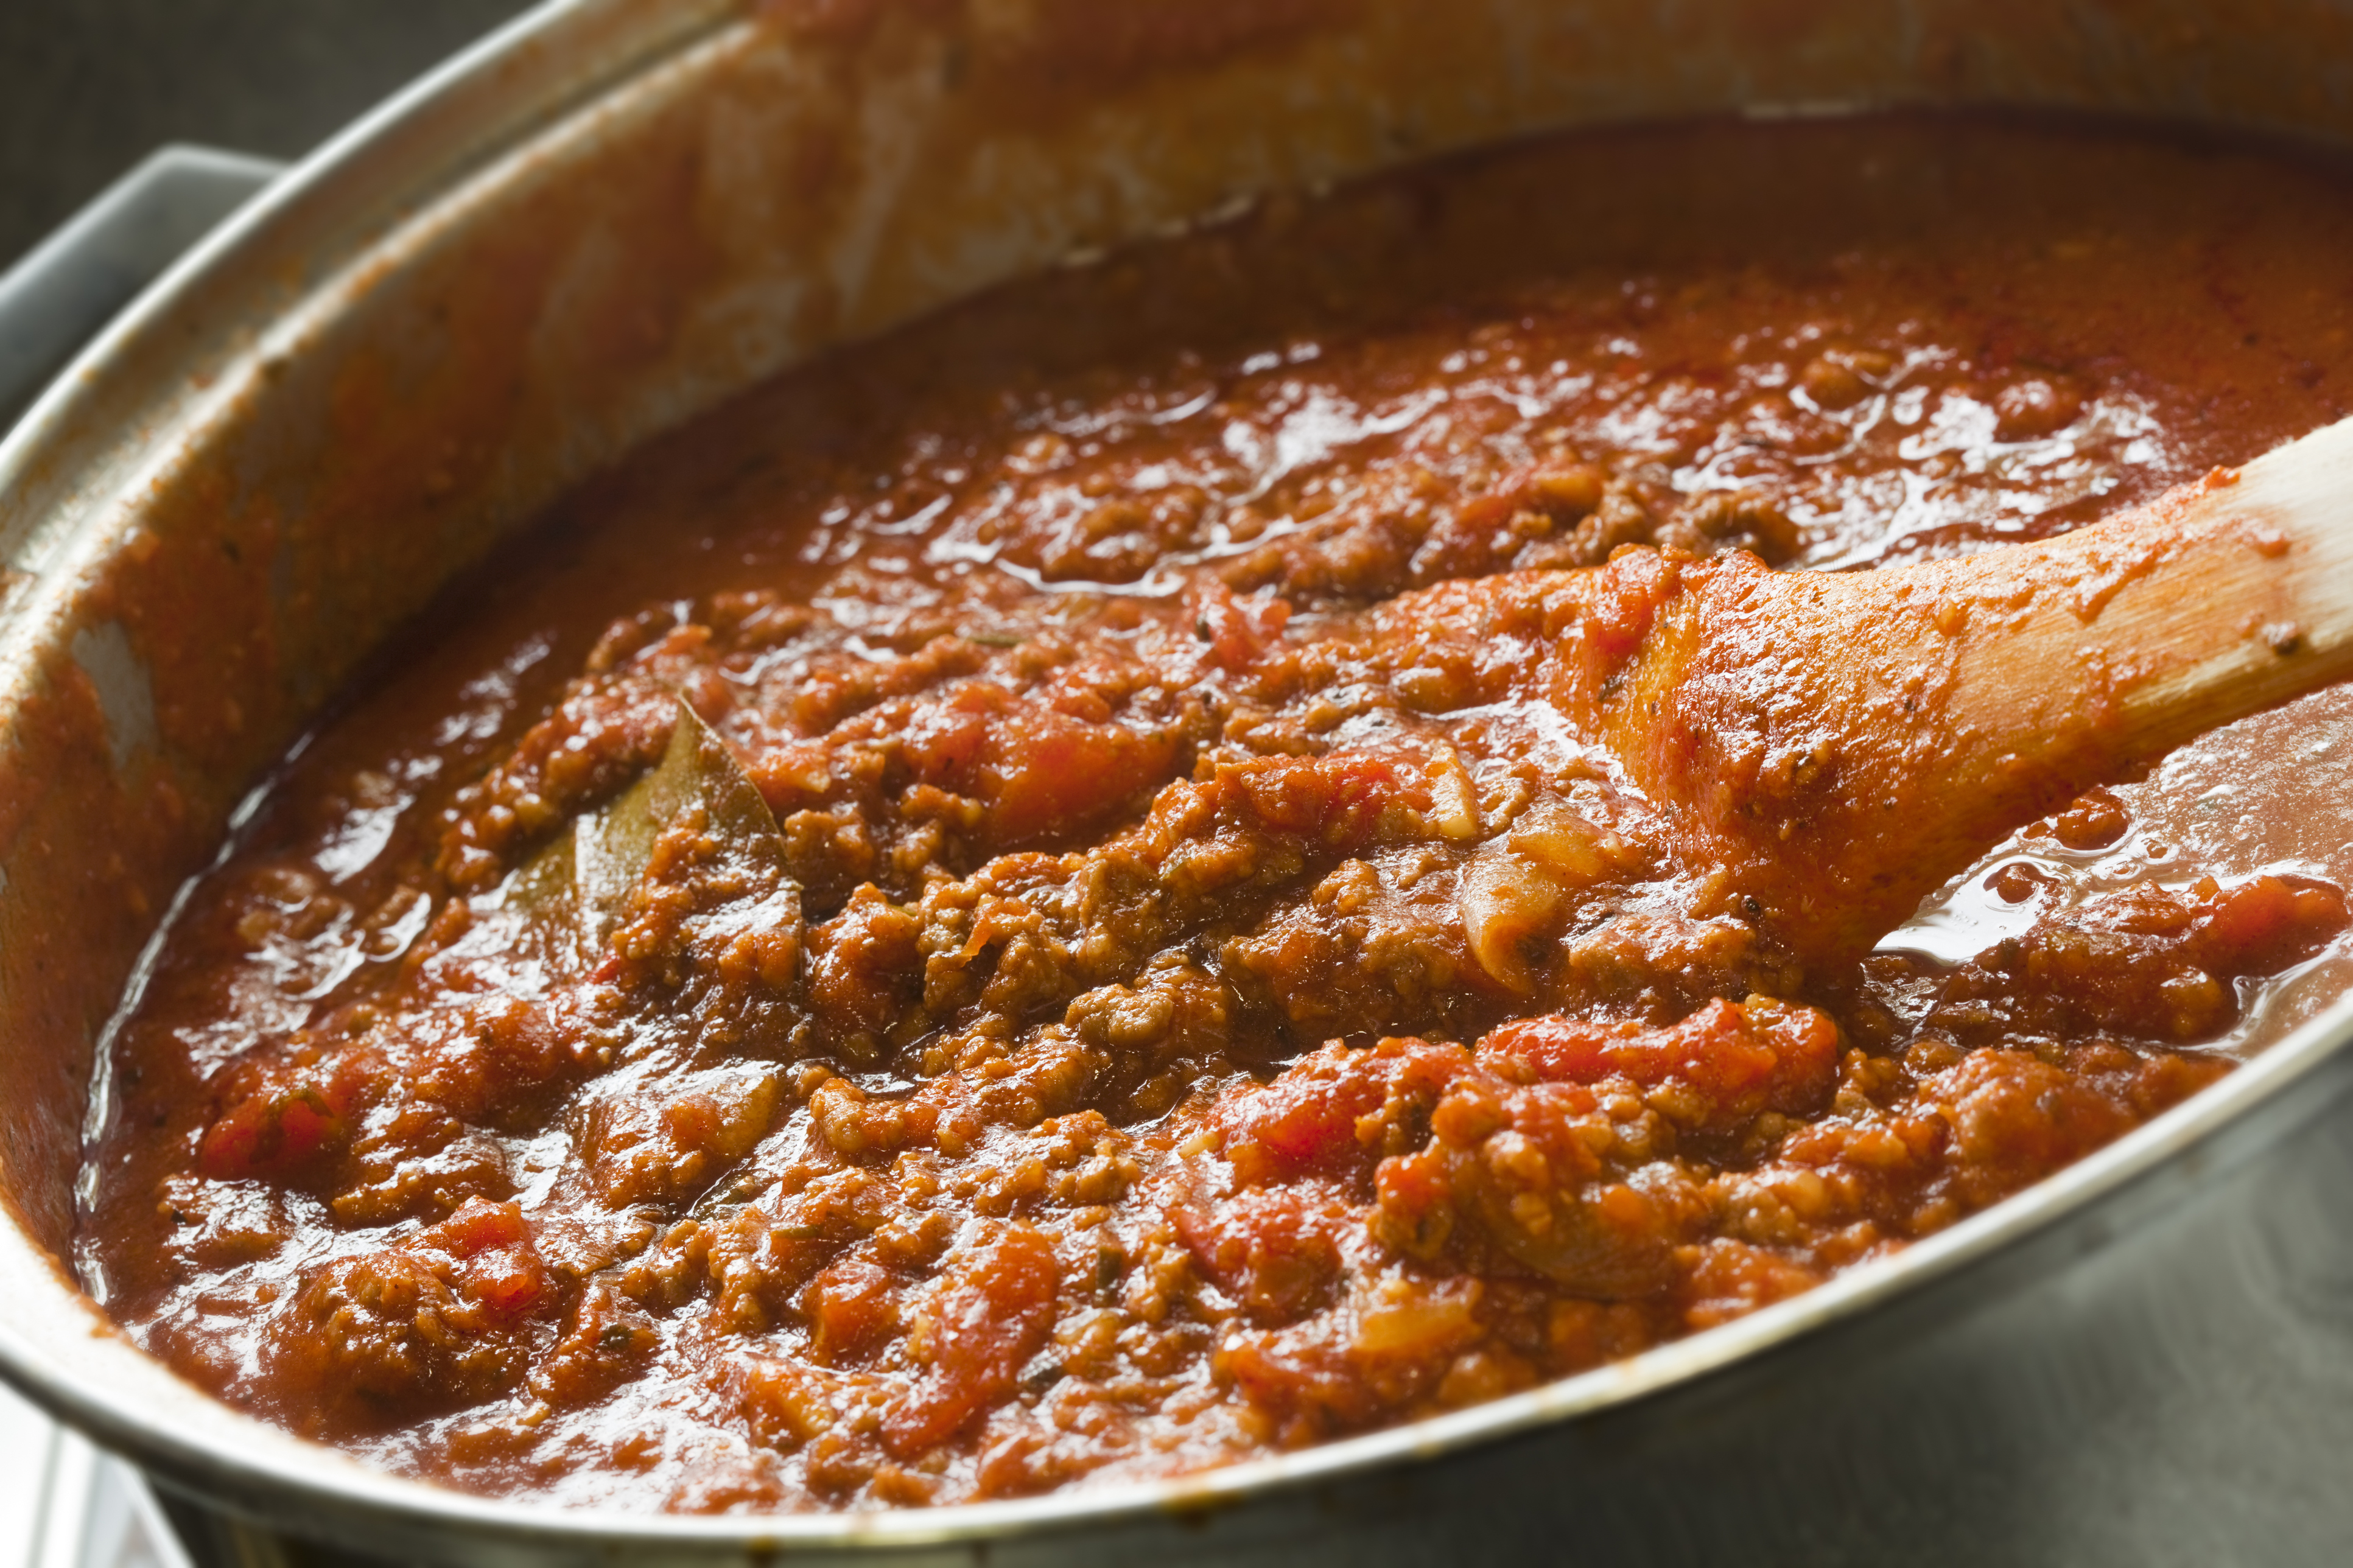 Rich Bolognese sauce cooking in a saucepan, with wooden spoon, ready for your pasta dish.  More beef images: